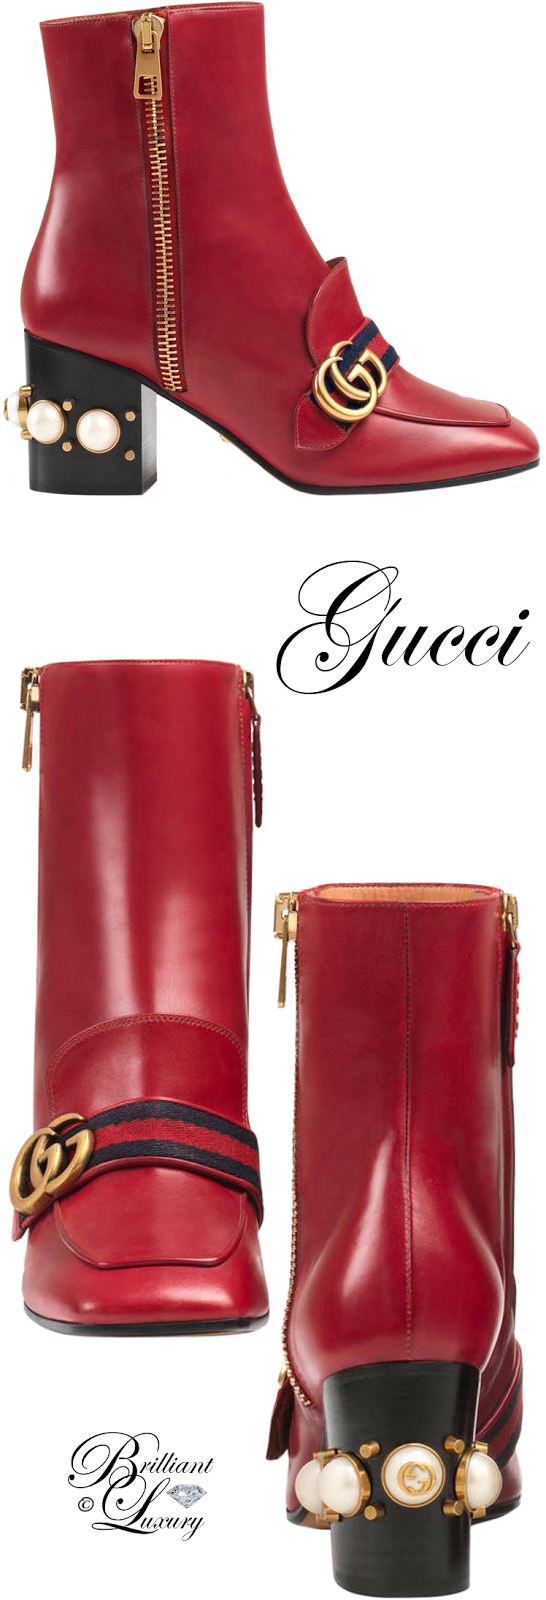 Brilliant Luxury ♦ Gucci Leather Mid-Heel Ankle Boot